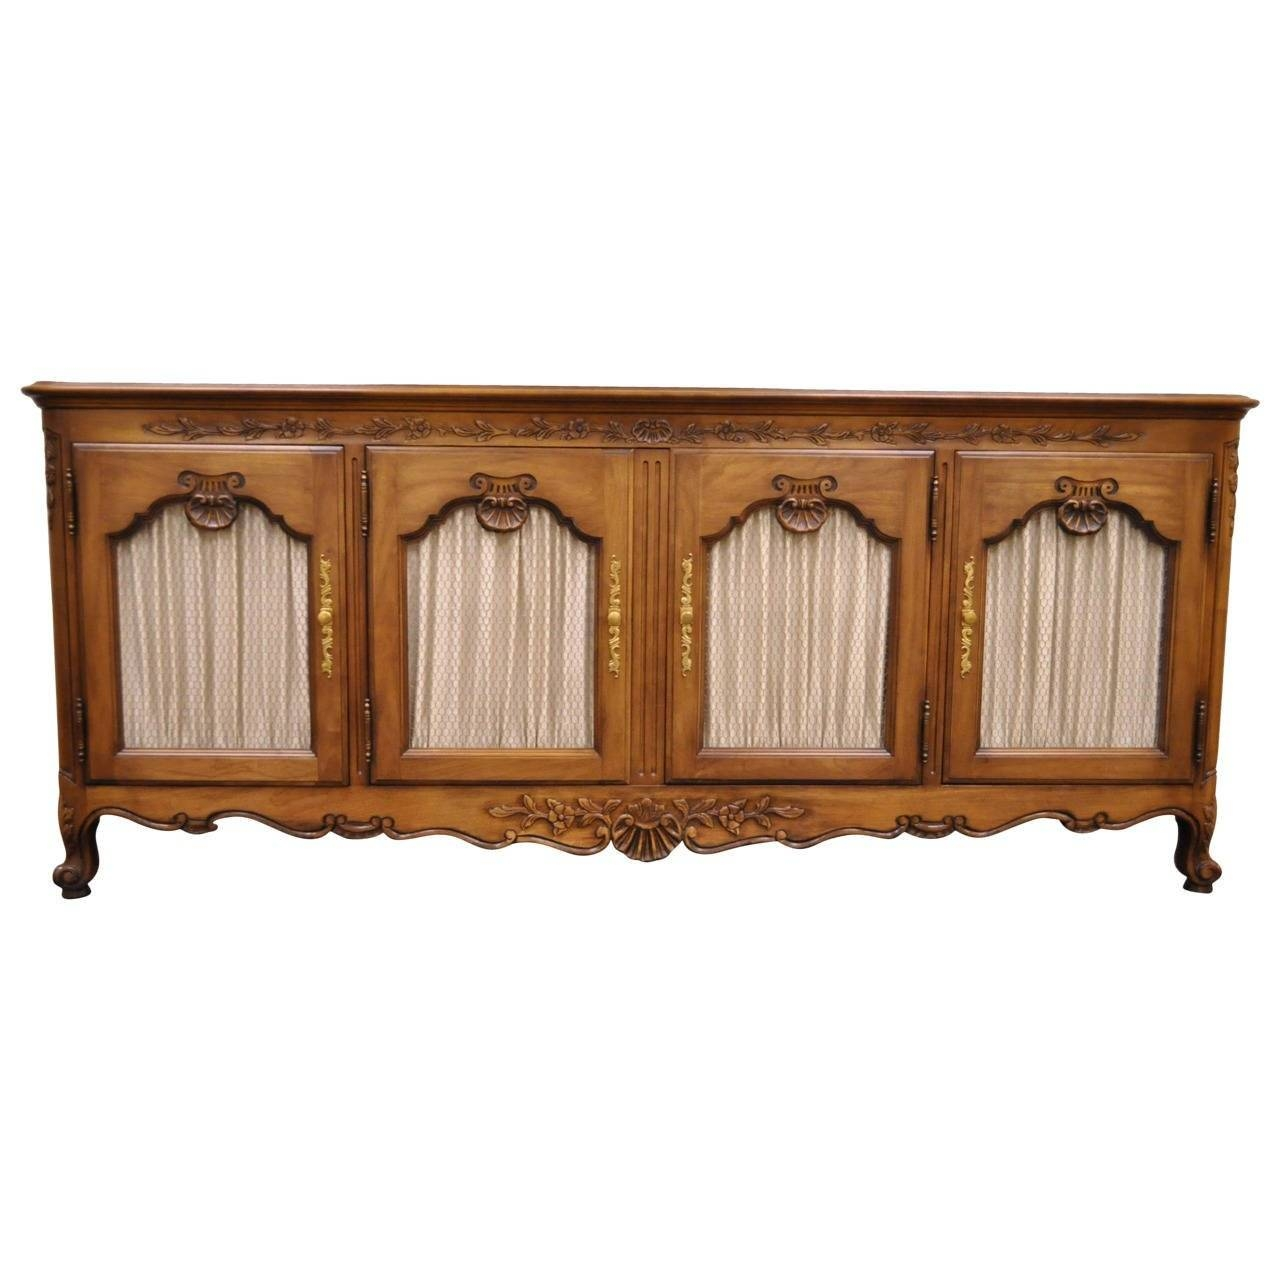 Hand-Carved French Country Or Louis Xv Style Vintage Sideboard inside French Style Sideboards (Image 17 of 30)